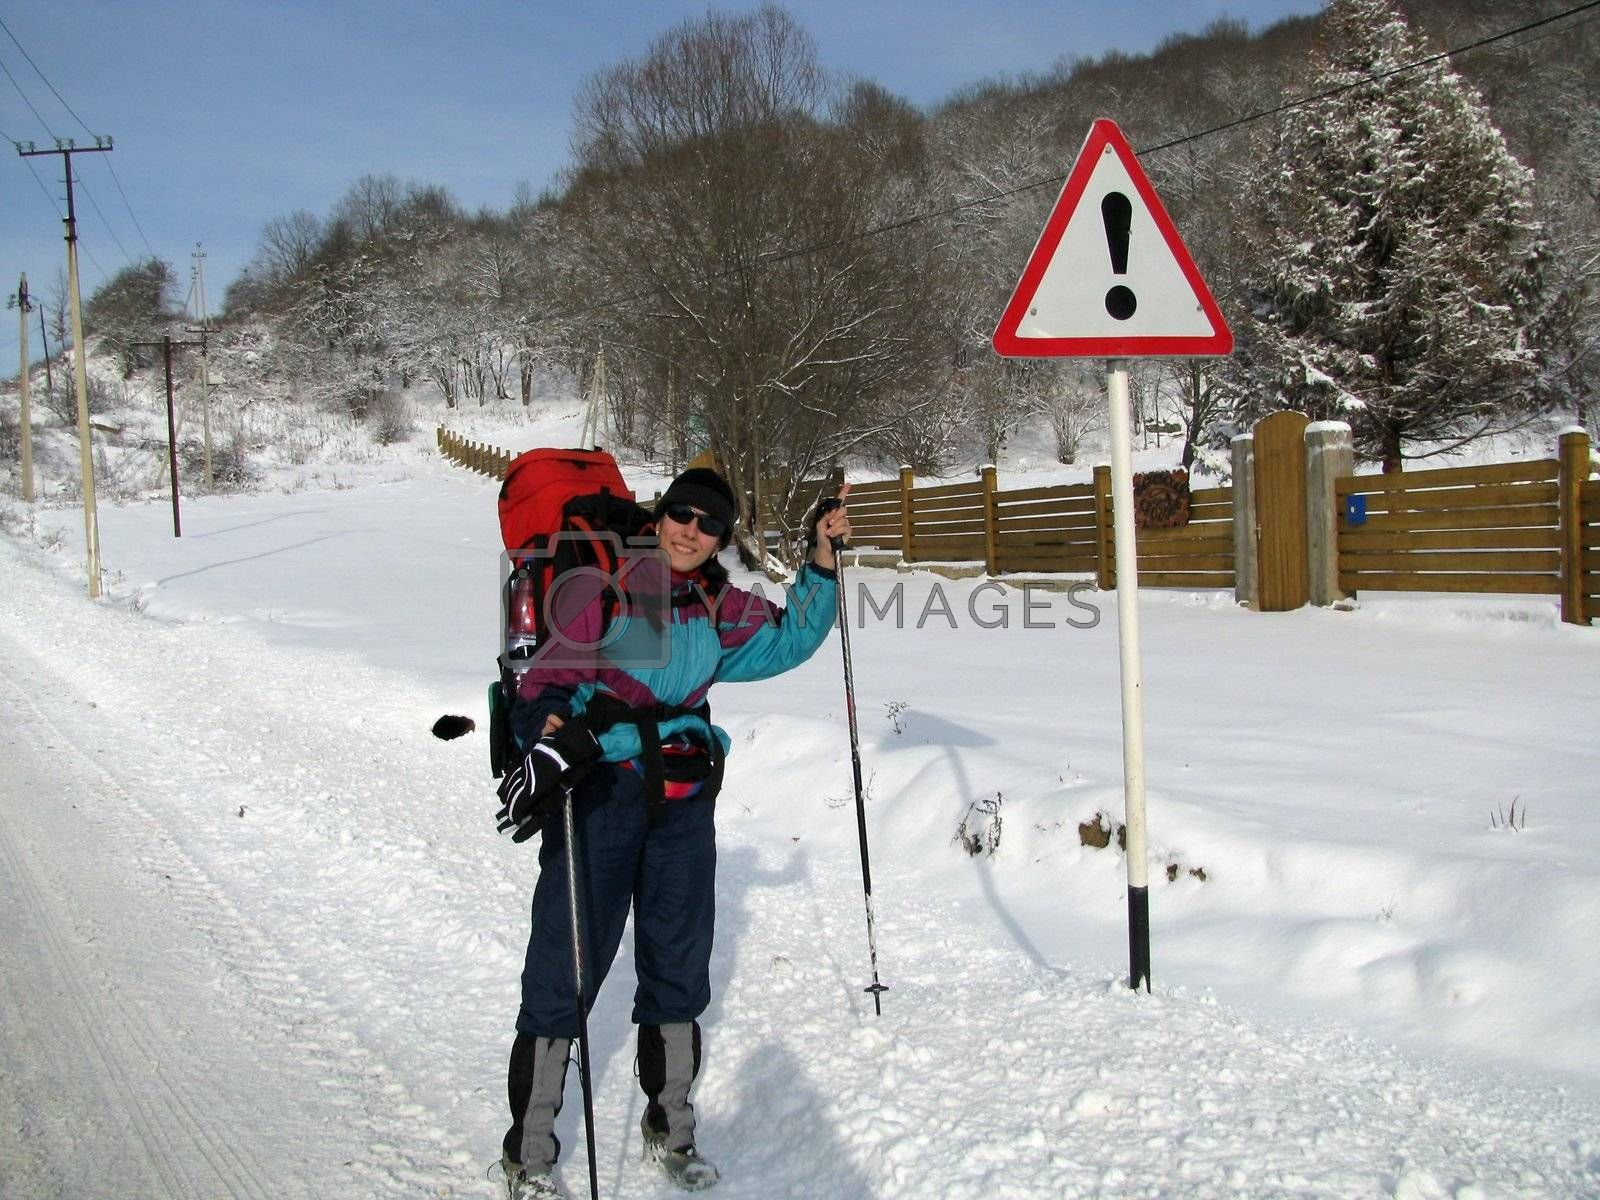 The girl, the tourist, travel, productive leisure, the nature, winter, snow, a campaign, caucasus, idea, a smile, settlement, road, wood, a kind, a sign, the index, a fence, equipment, a hill, mountains